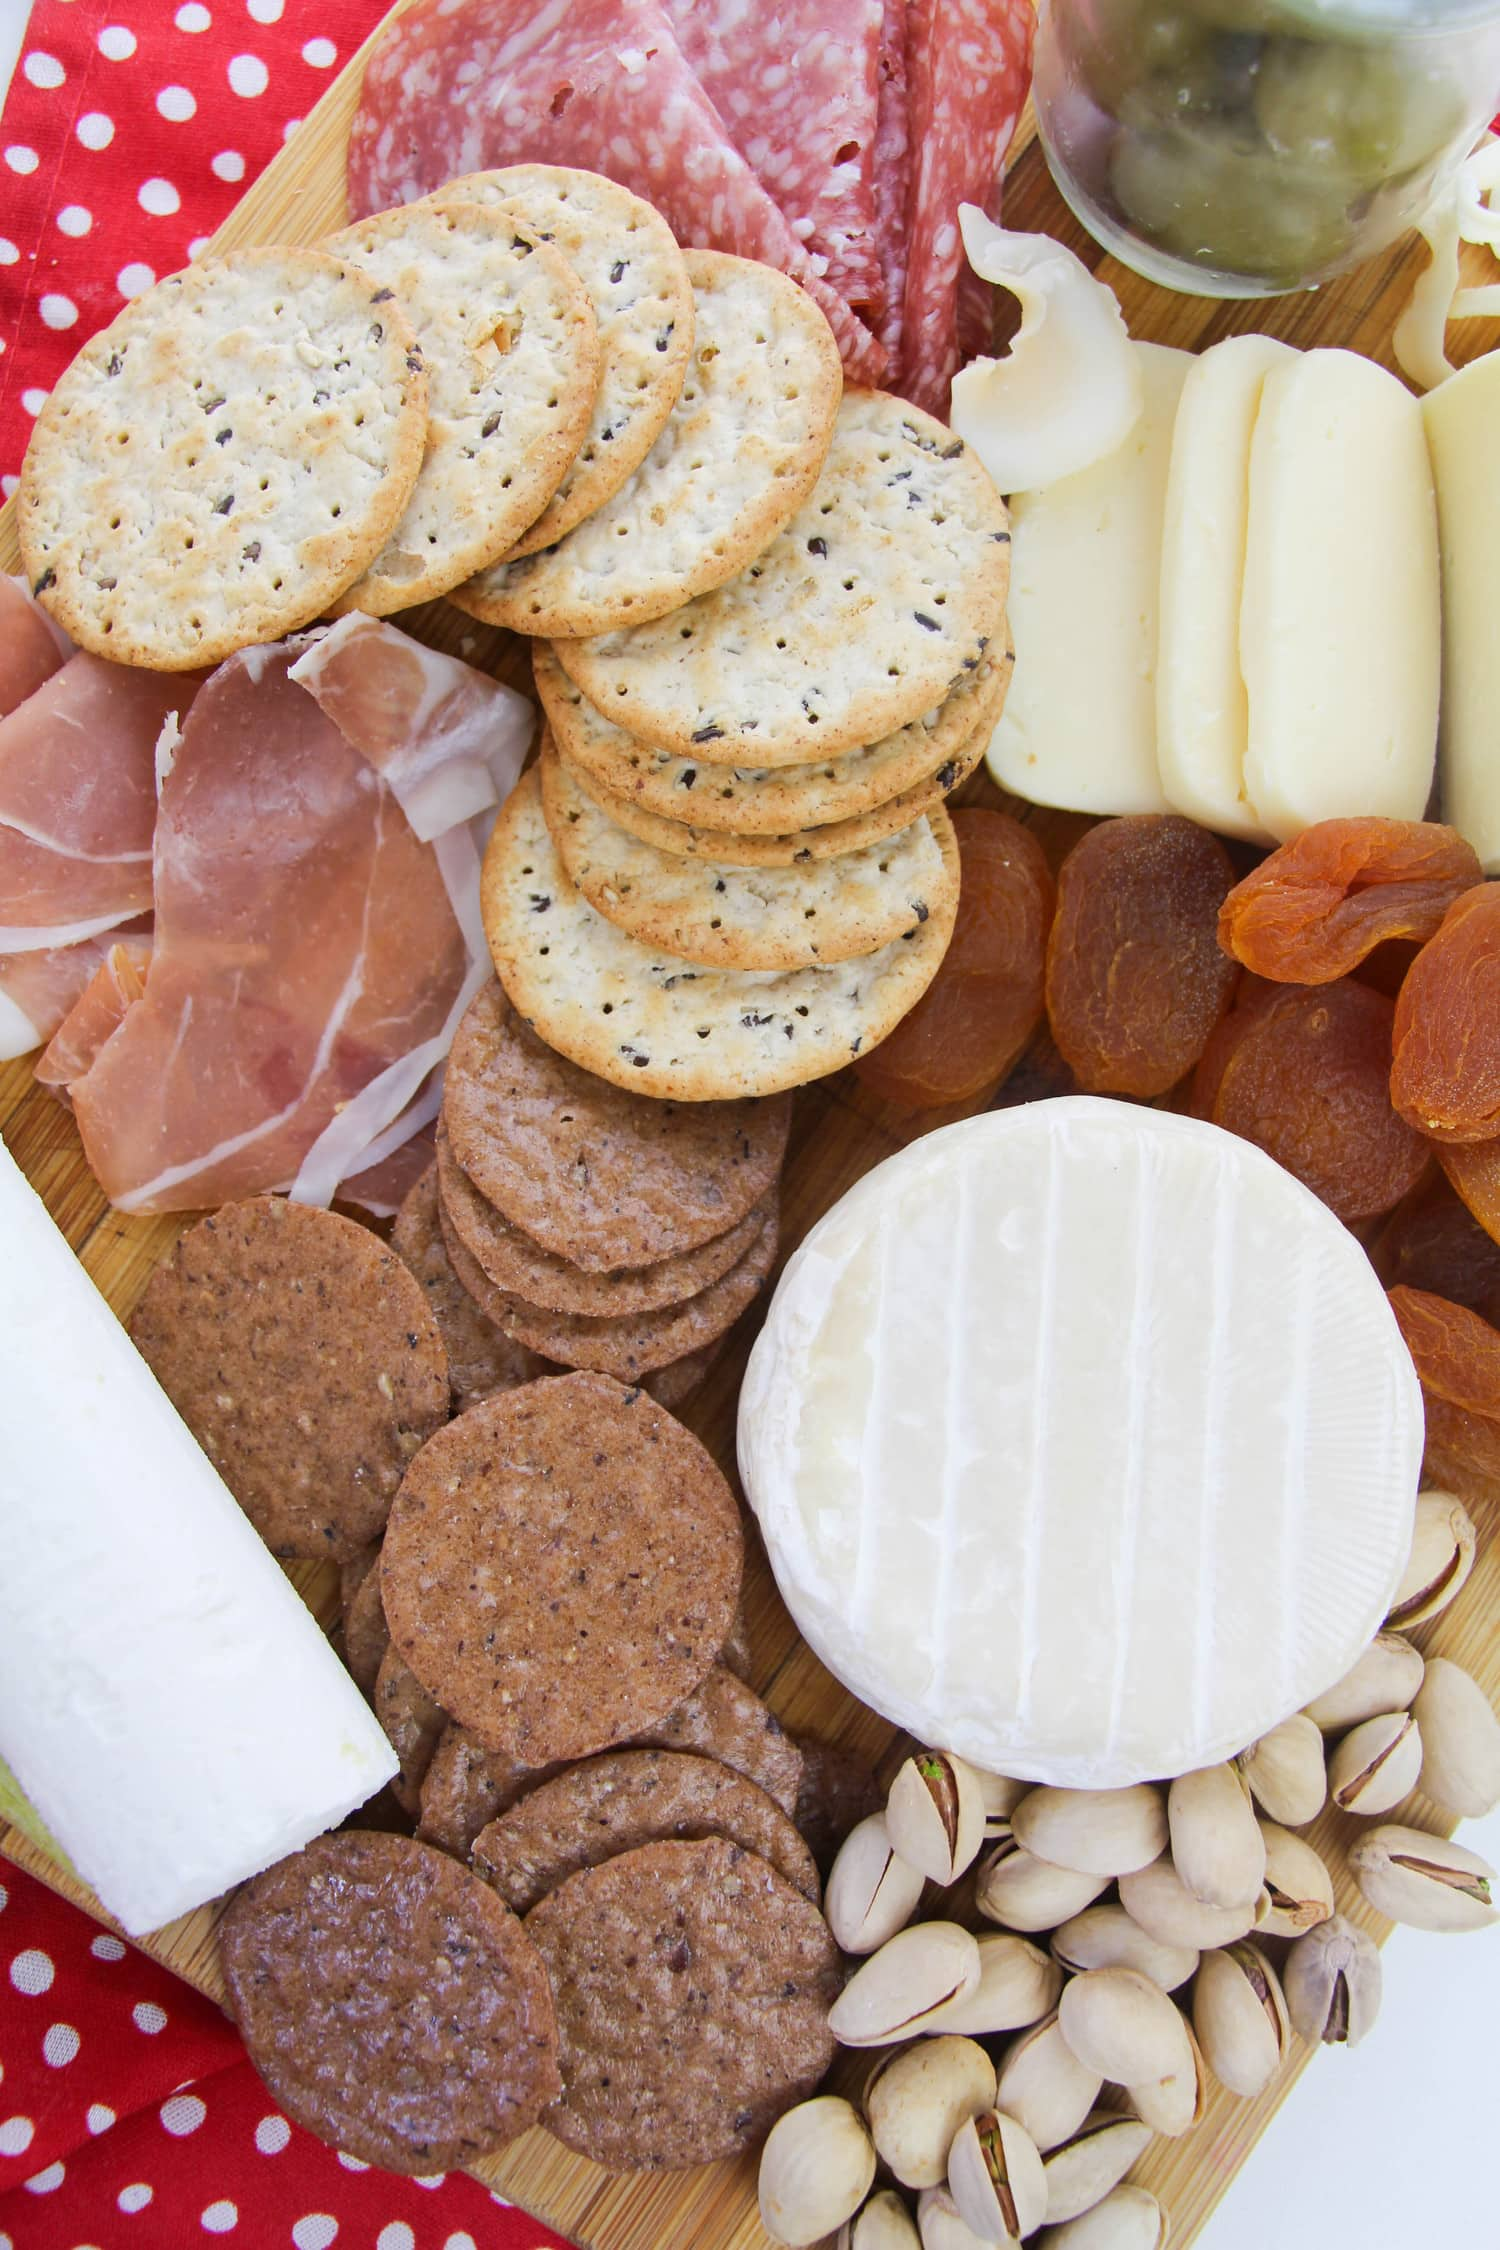 Meats, Cheeses, Crackers